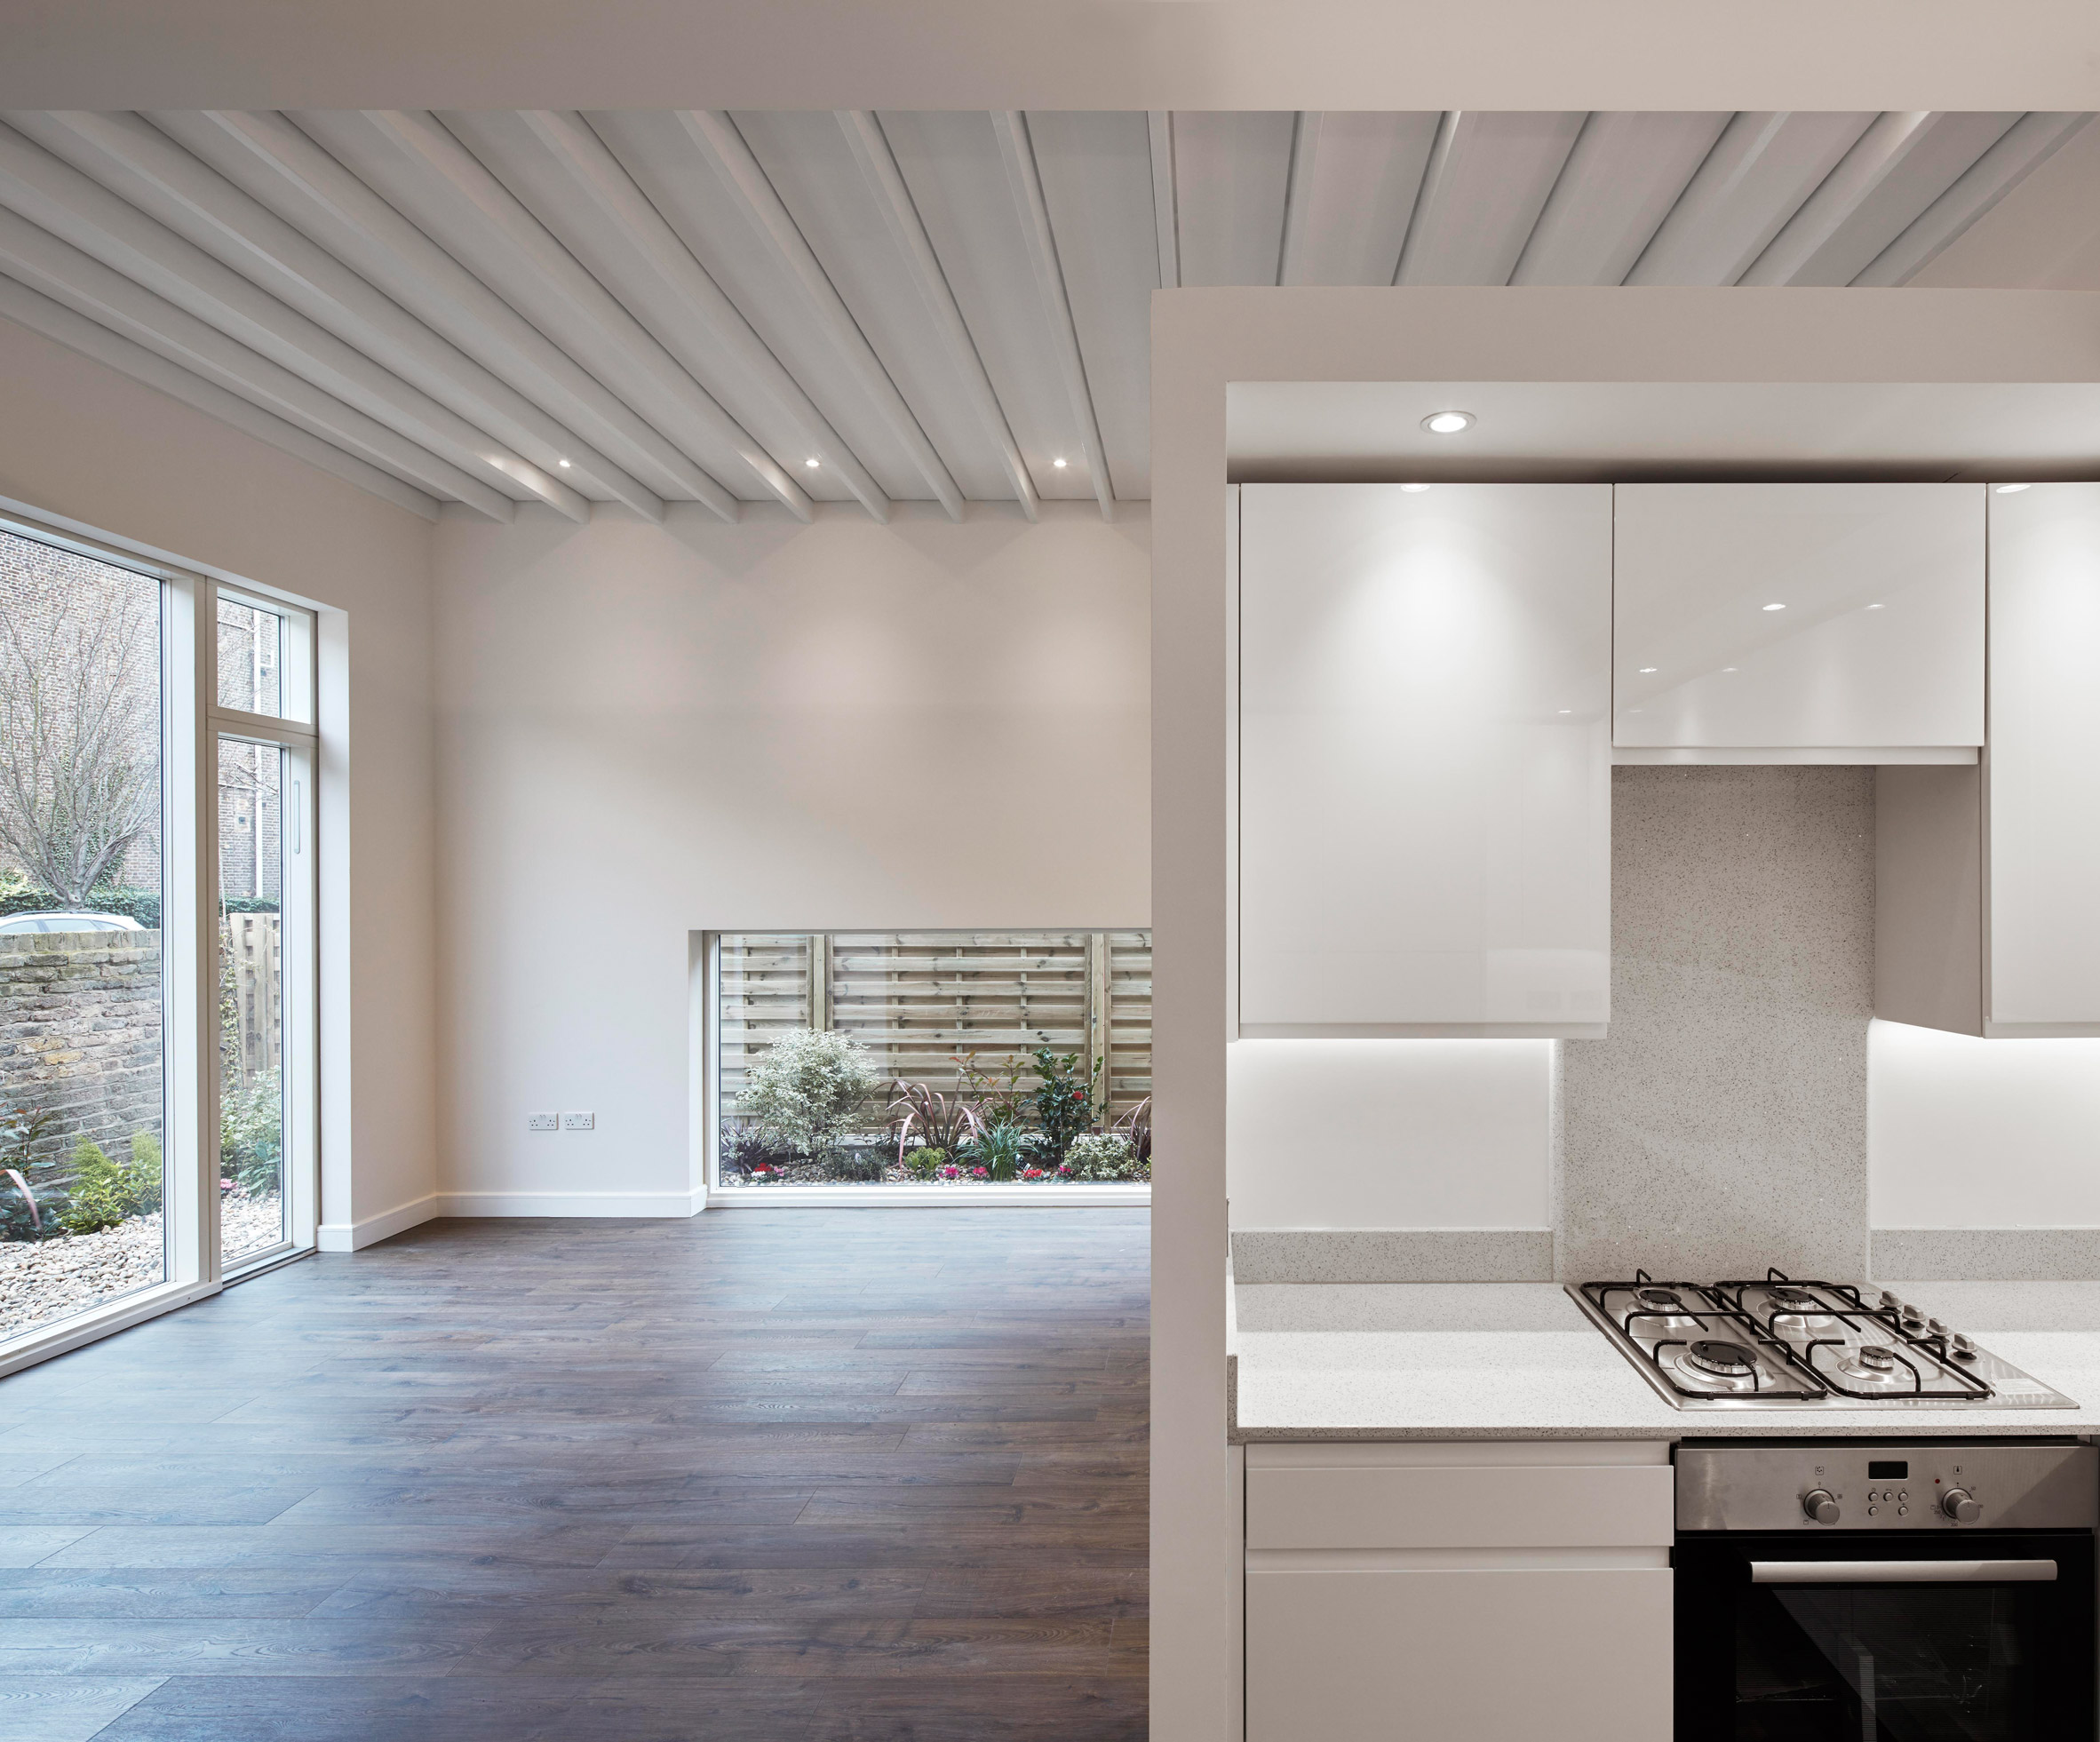 New House in Kings Crescent by Madoc Architecture